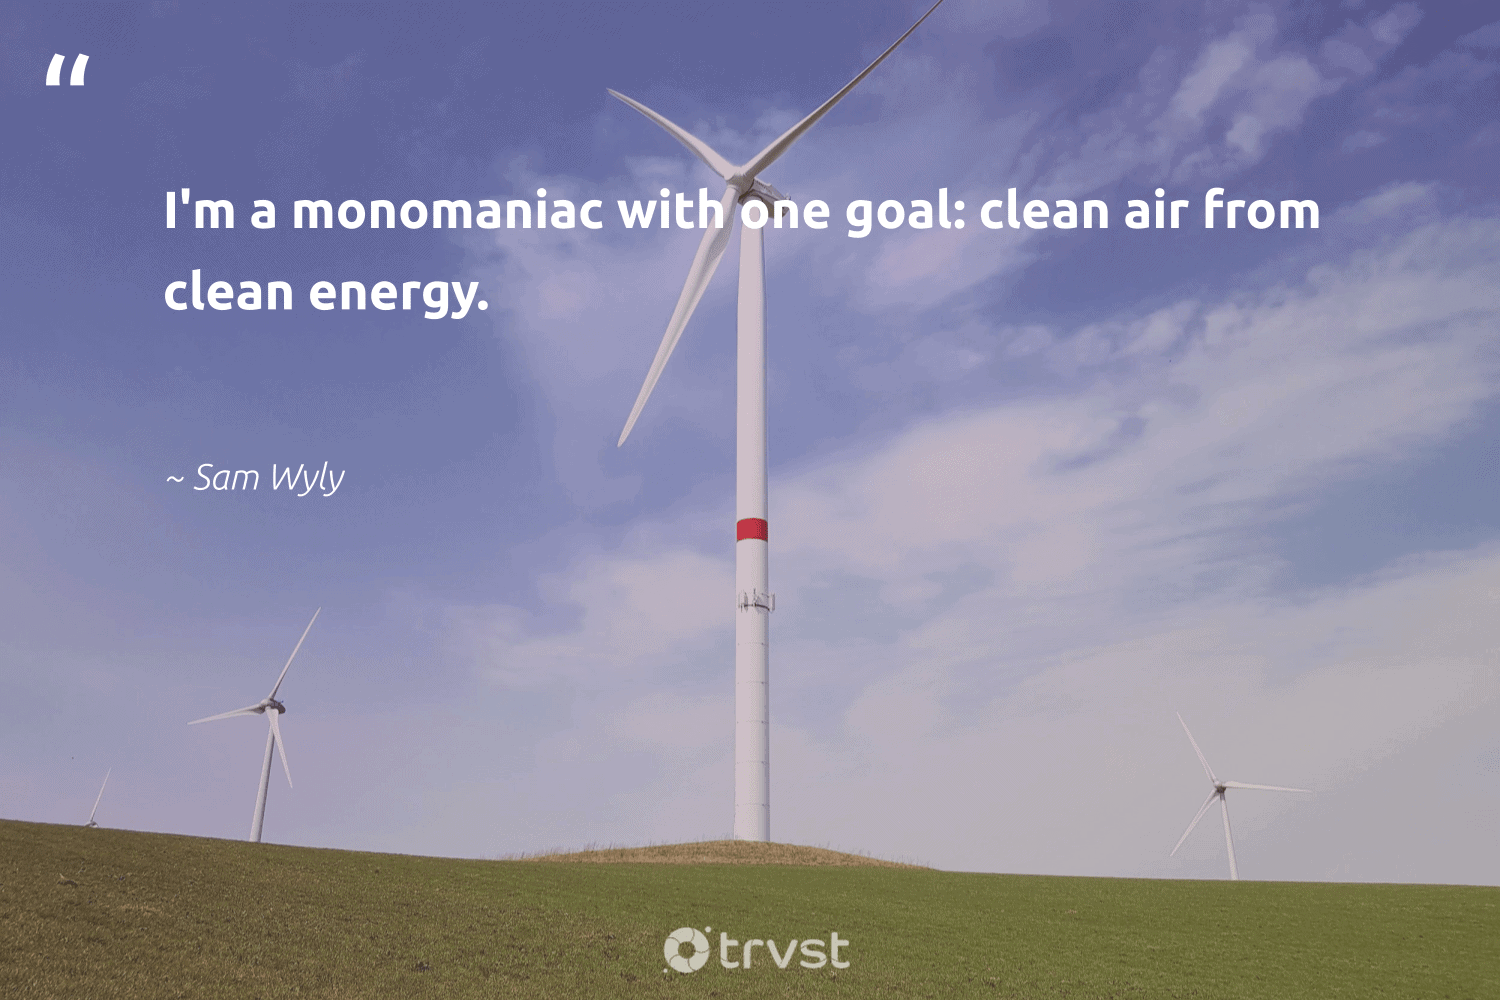 """""""I'm a monomaniac with one goal: clean air from clean energy.""""  - Sam Wyly #trvst #quotes #renewableenergy #energy #cleanenergy #greenenergy #climatechange #zerocarbon #dotherightthing #affordable #climatechange #environmental"""